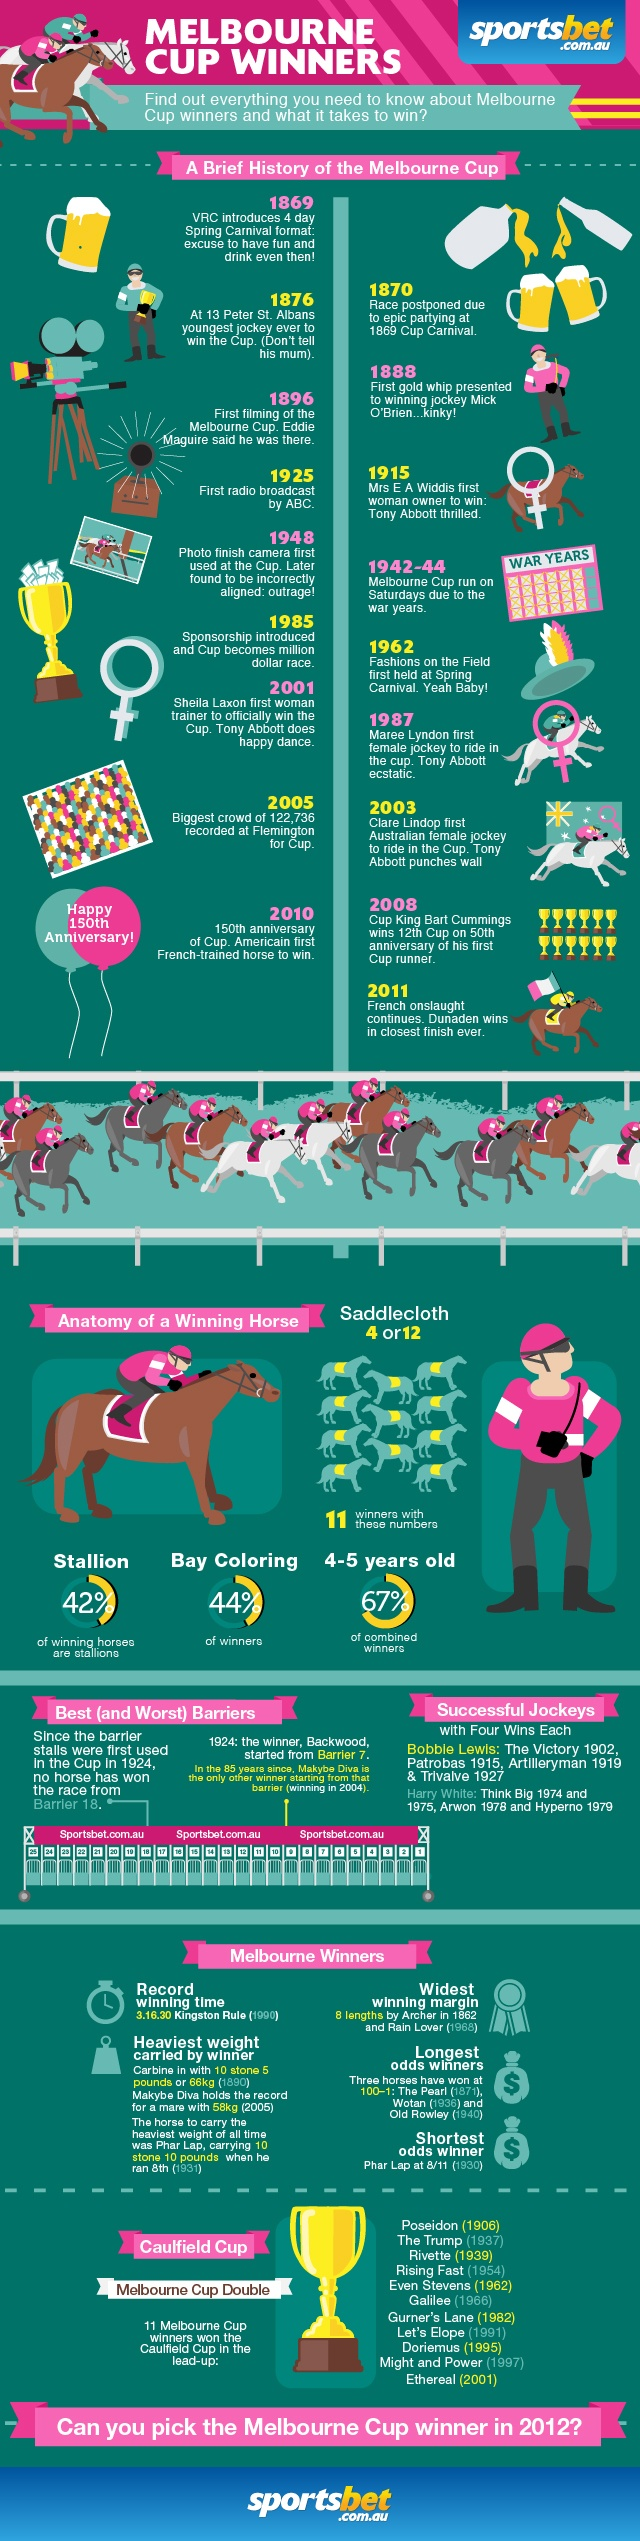 What is takes to win the Melbourne Cup